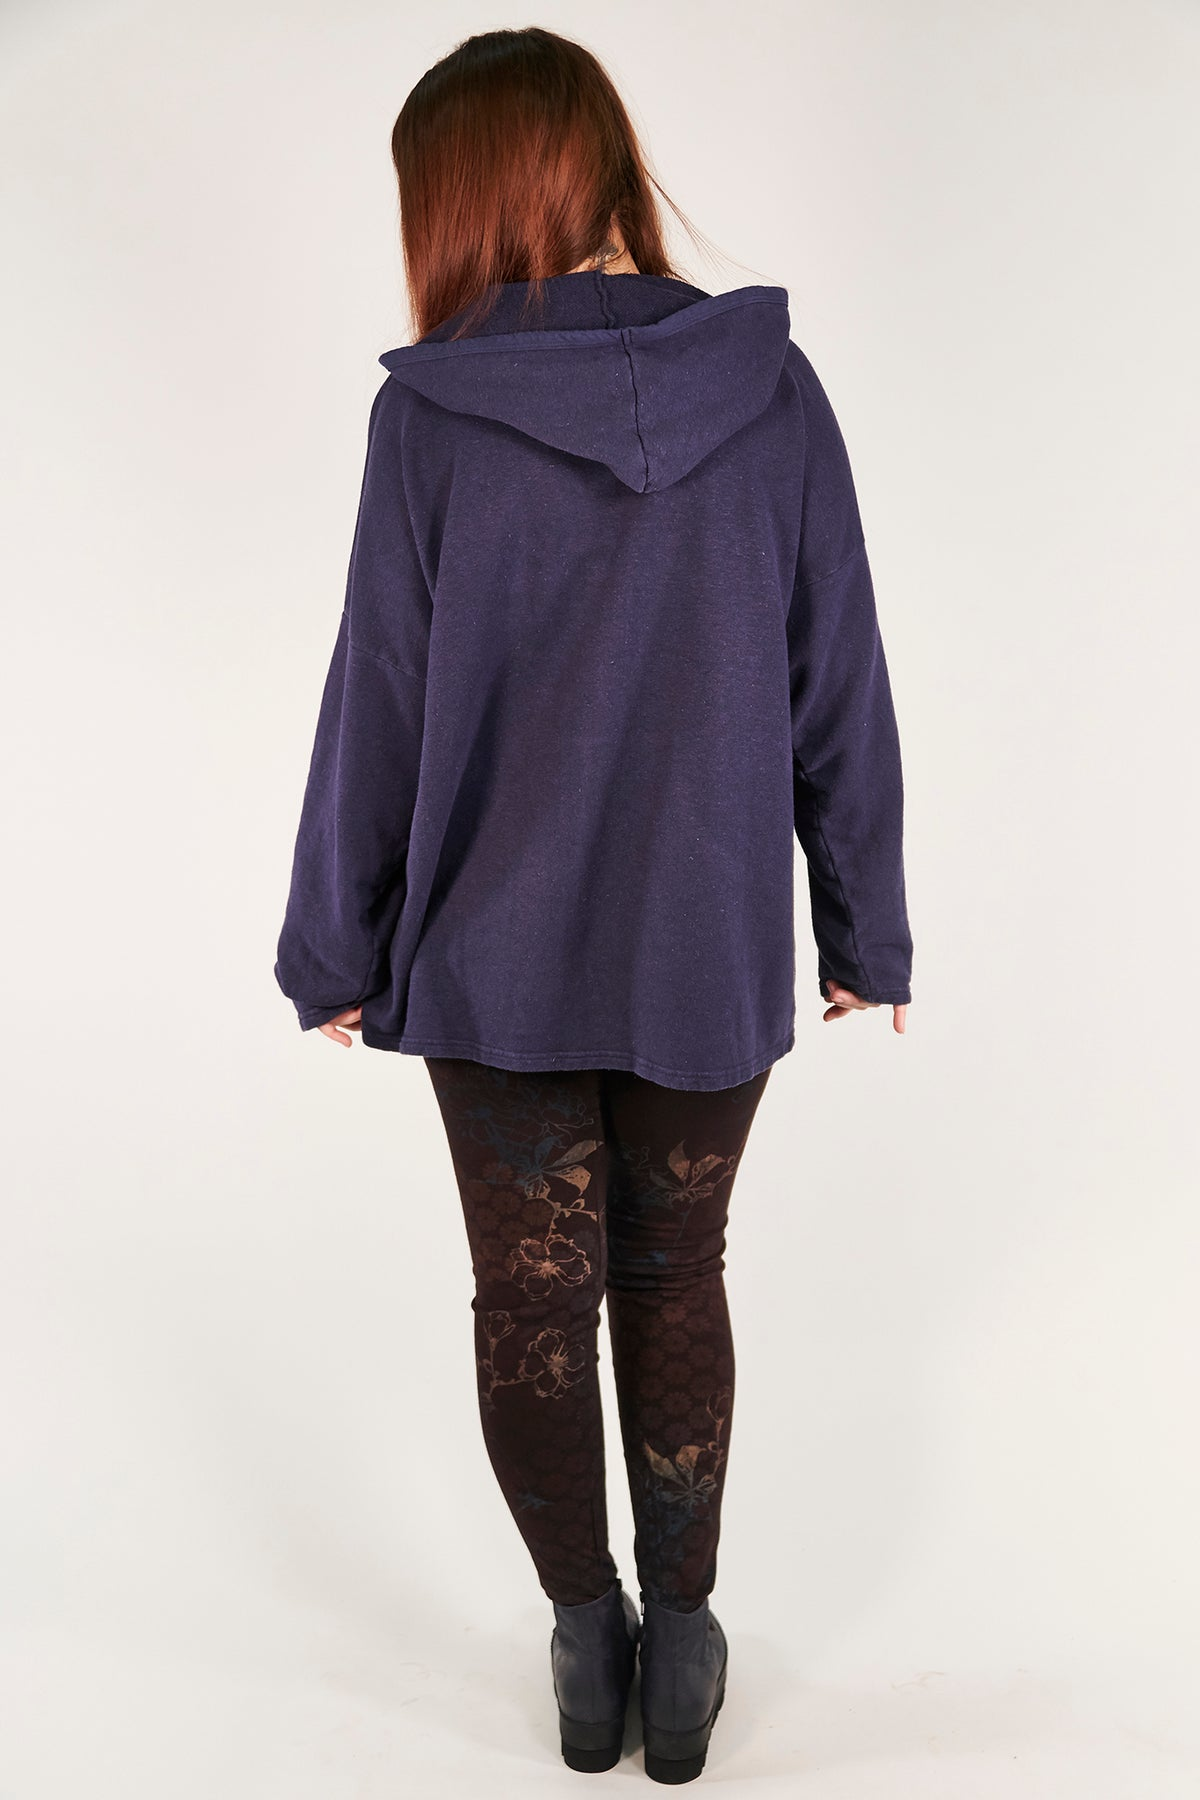 8888 Hip to Be Square Hoodie-Odyssey Blue-P